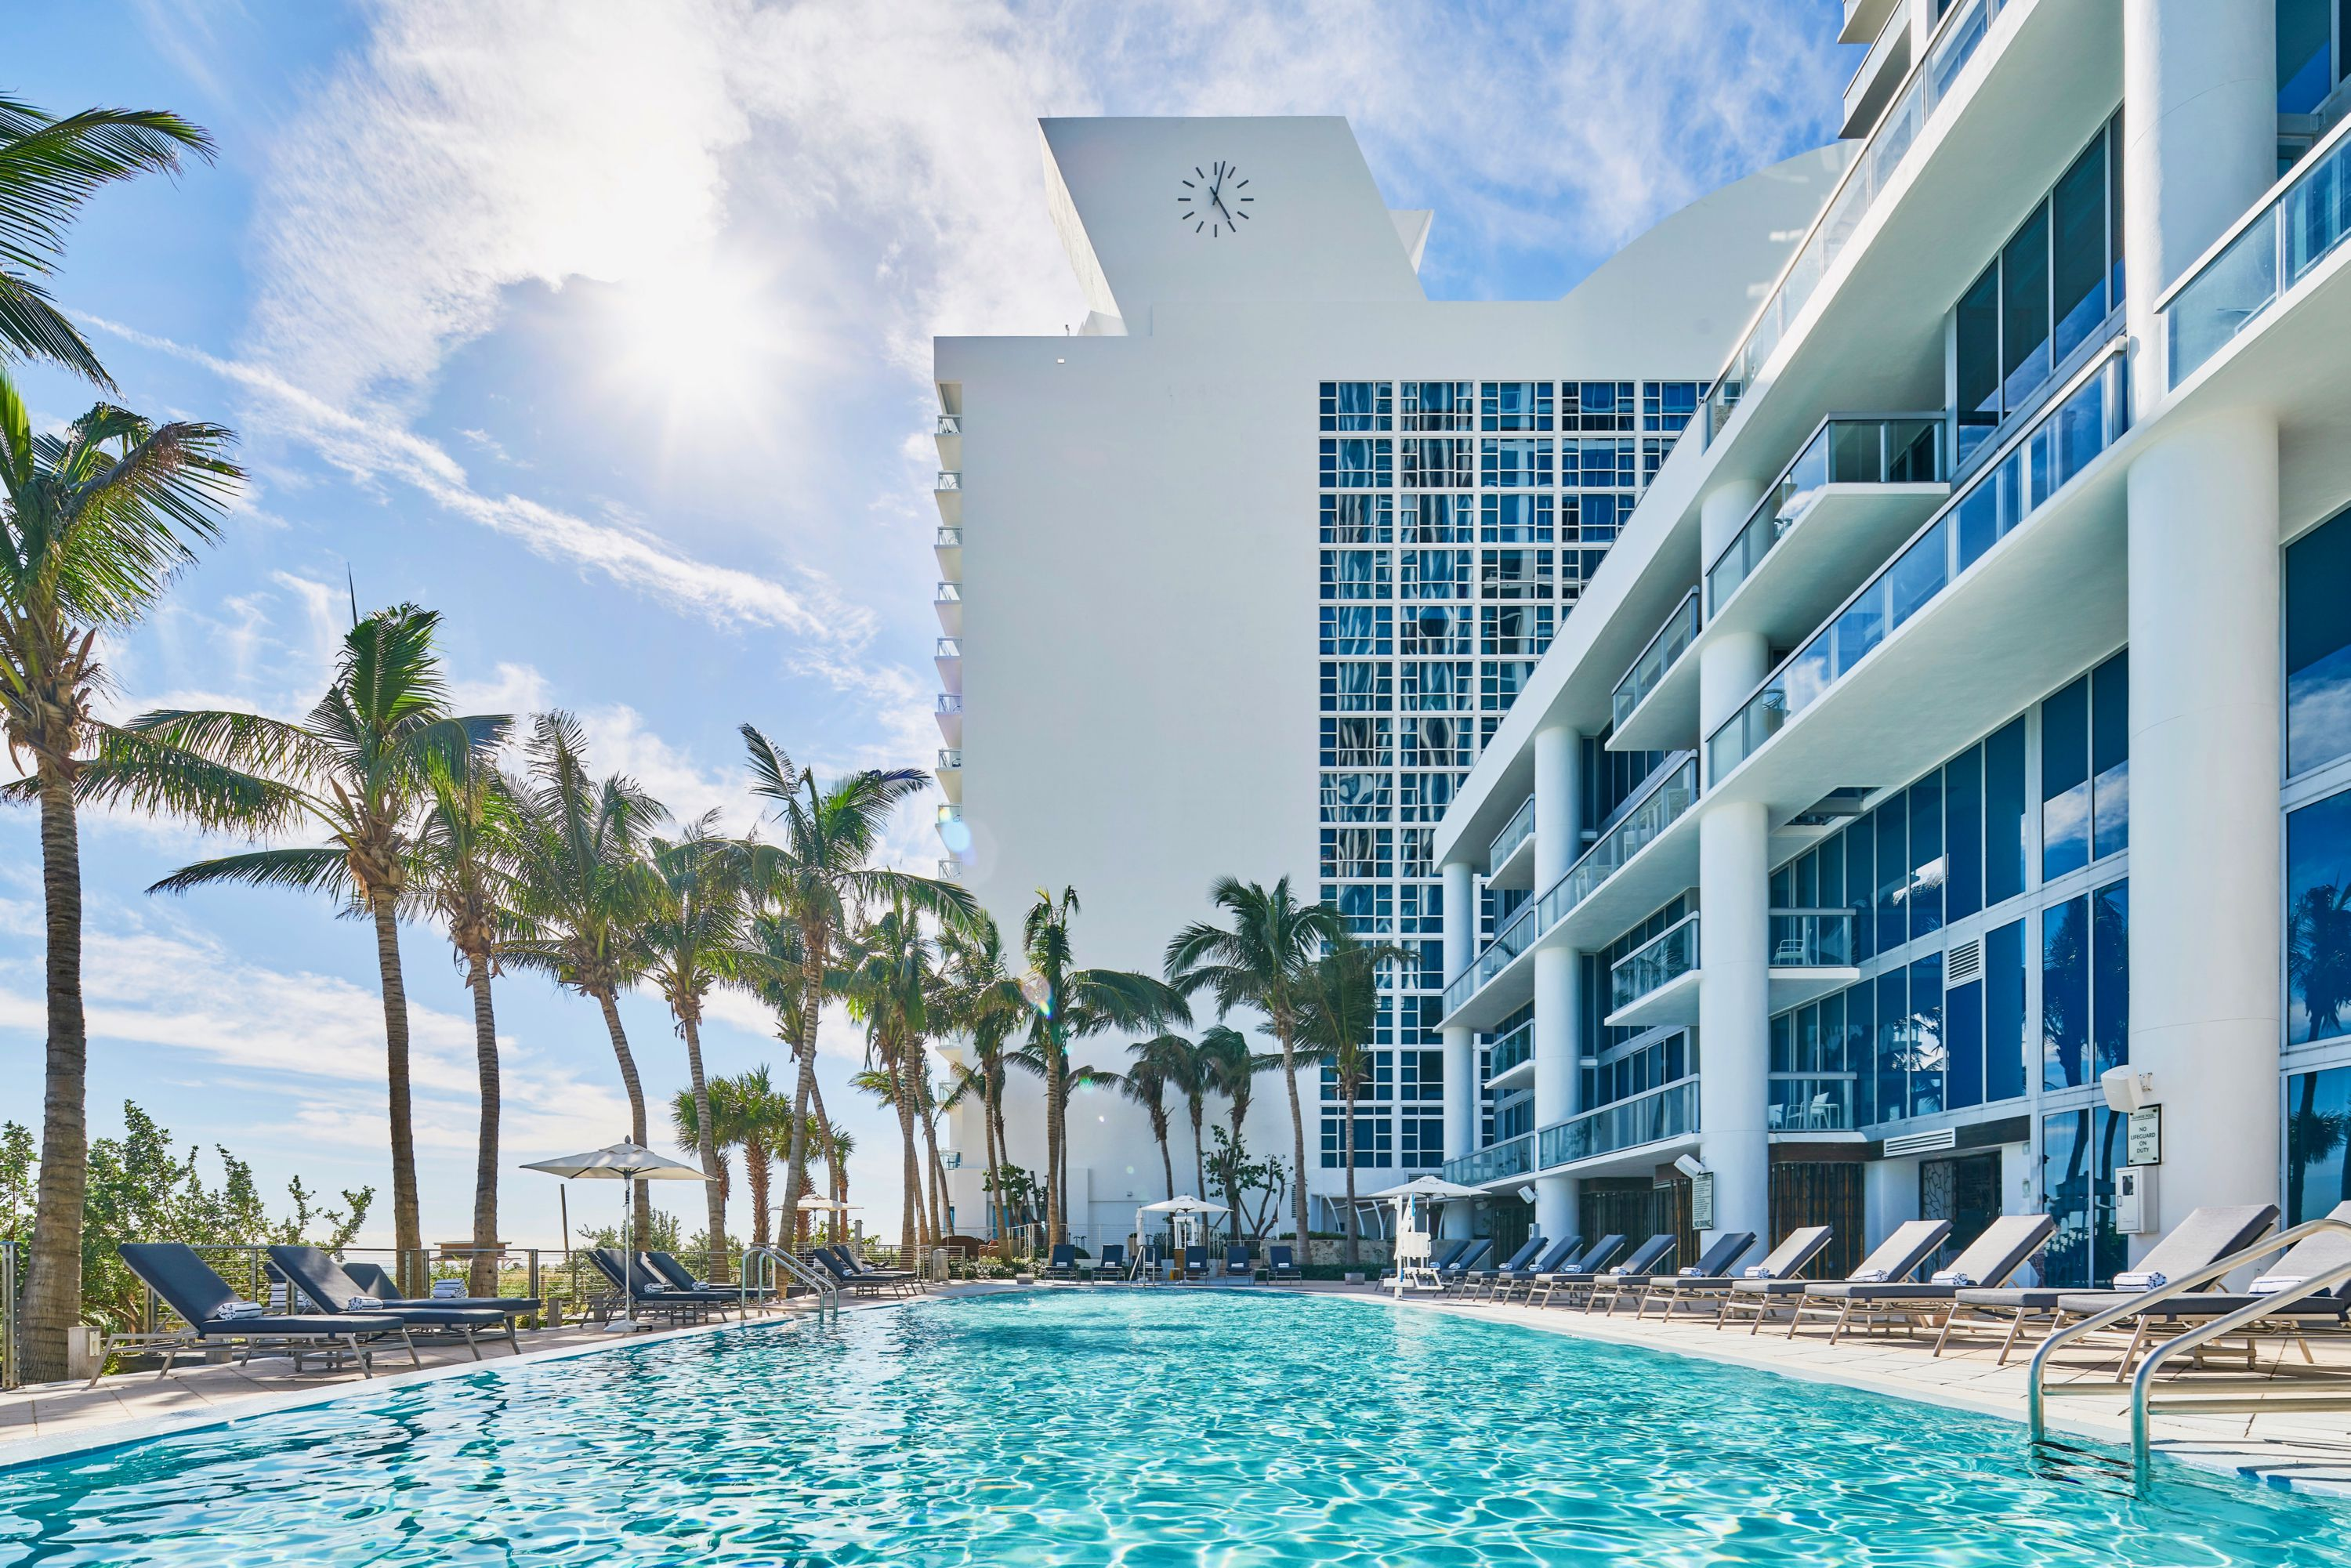 Grandes vacaciones en Miami en el Carillon Miami Wellness Resort